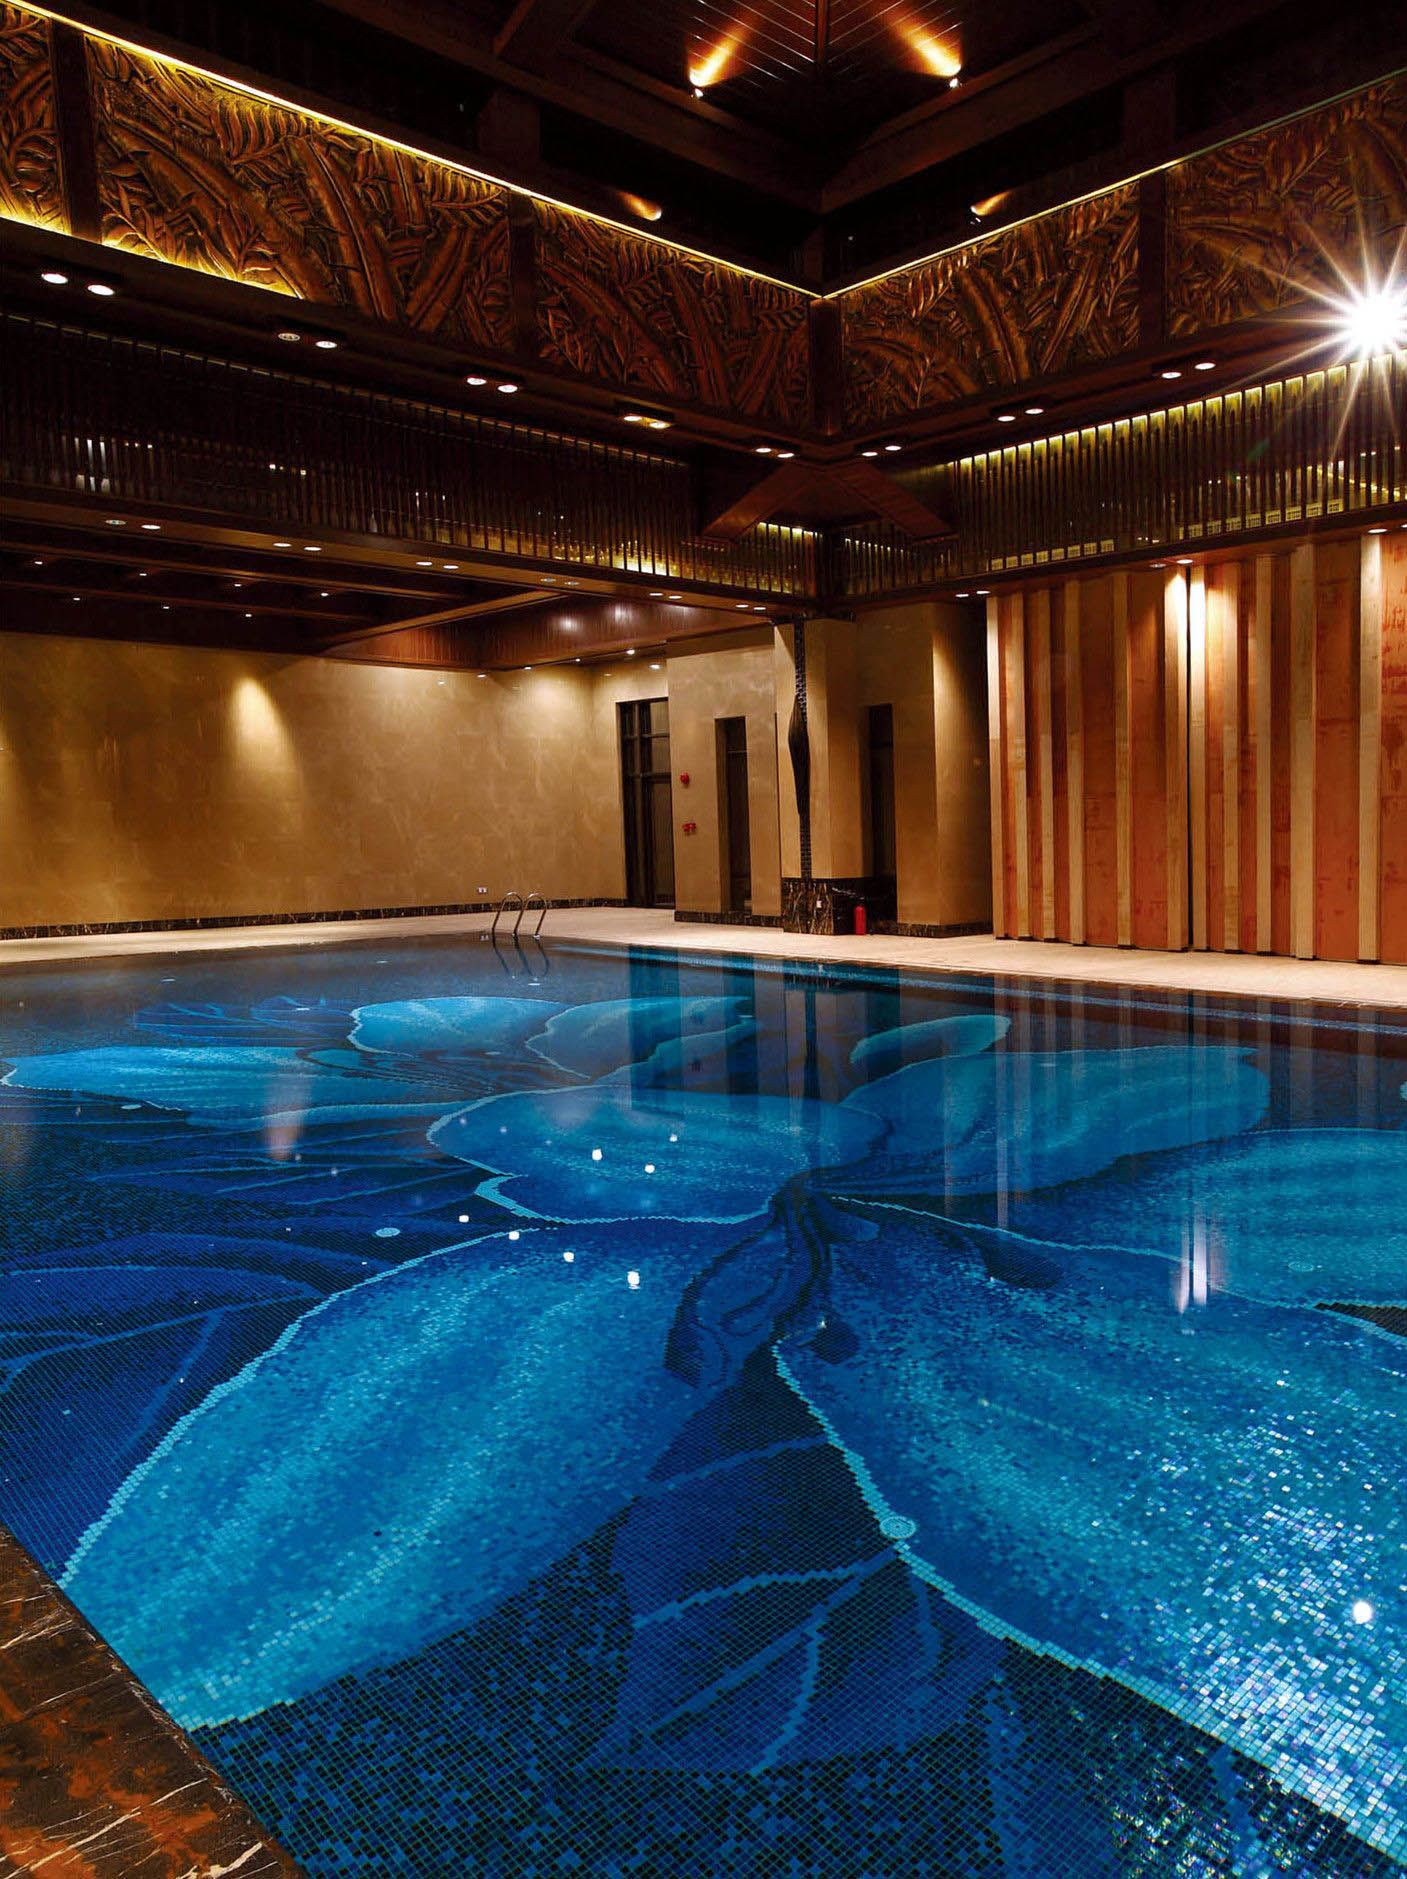 Top Cost Of Building An Indoor Swimming Pool Only In Neuron Home Design Mosaic Pool Big Swimming Pools Luxury Swimming Pools